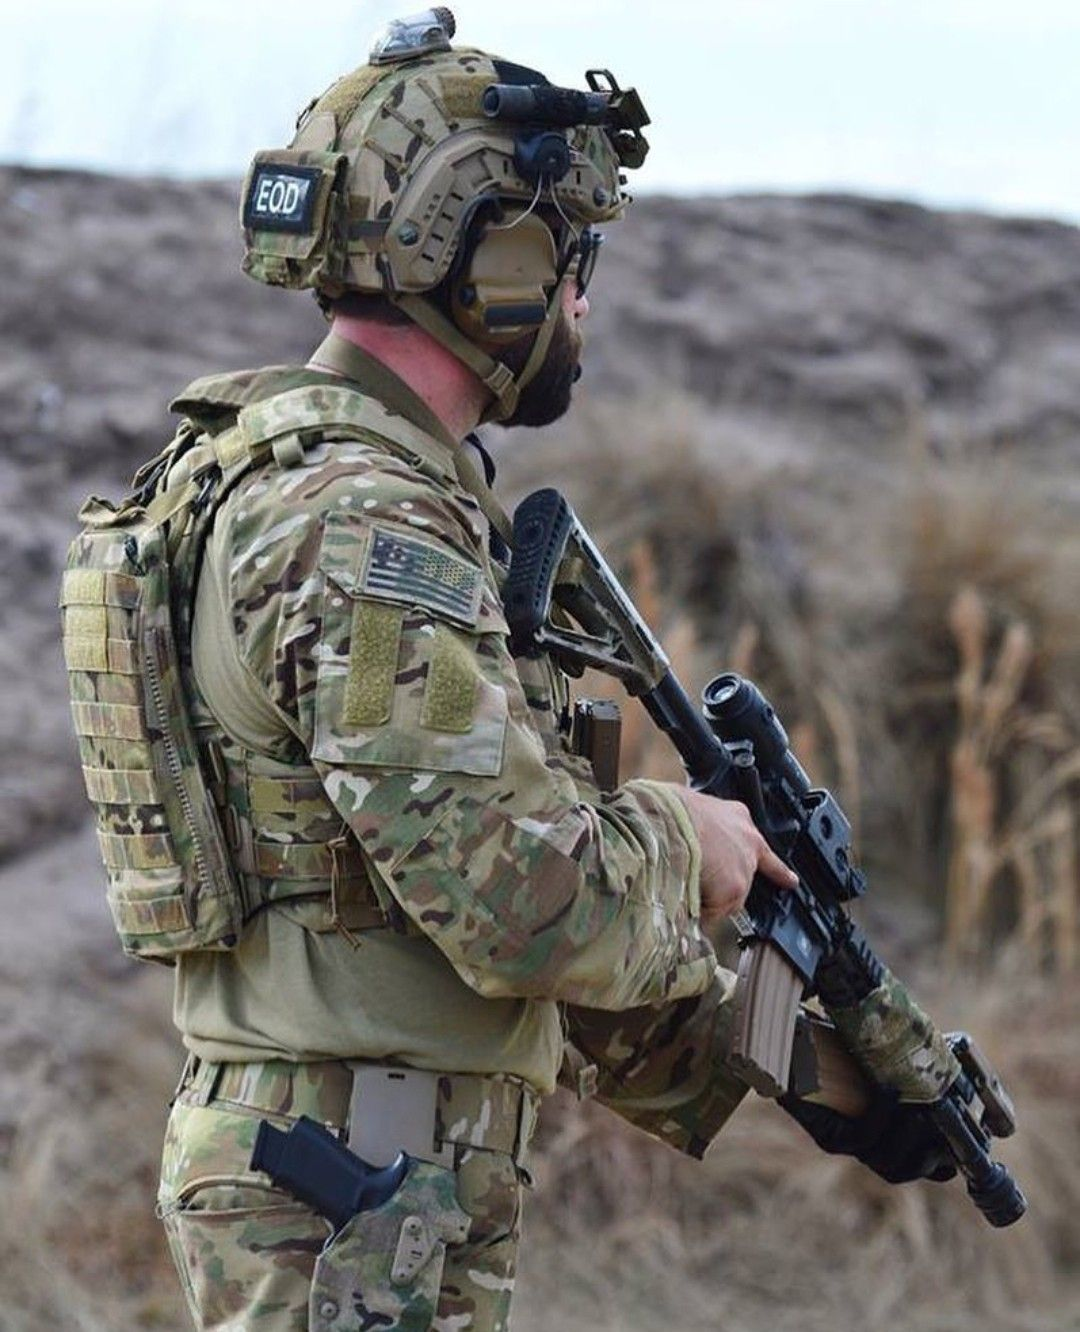 chihuahua Navy eod, Military forces, Special forces gear